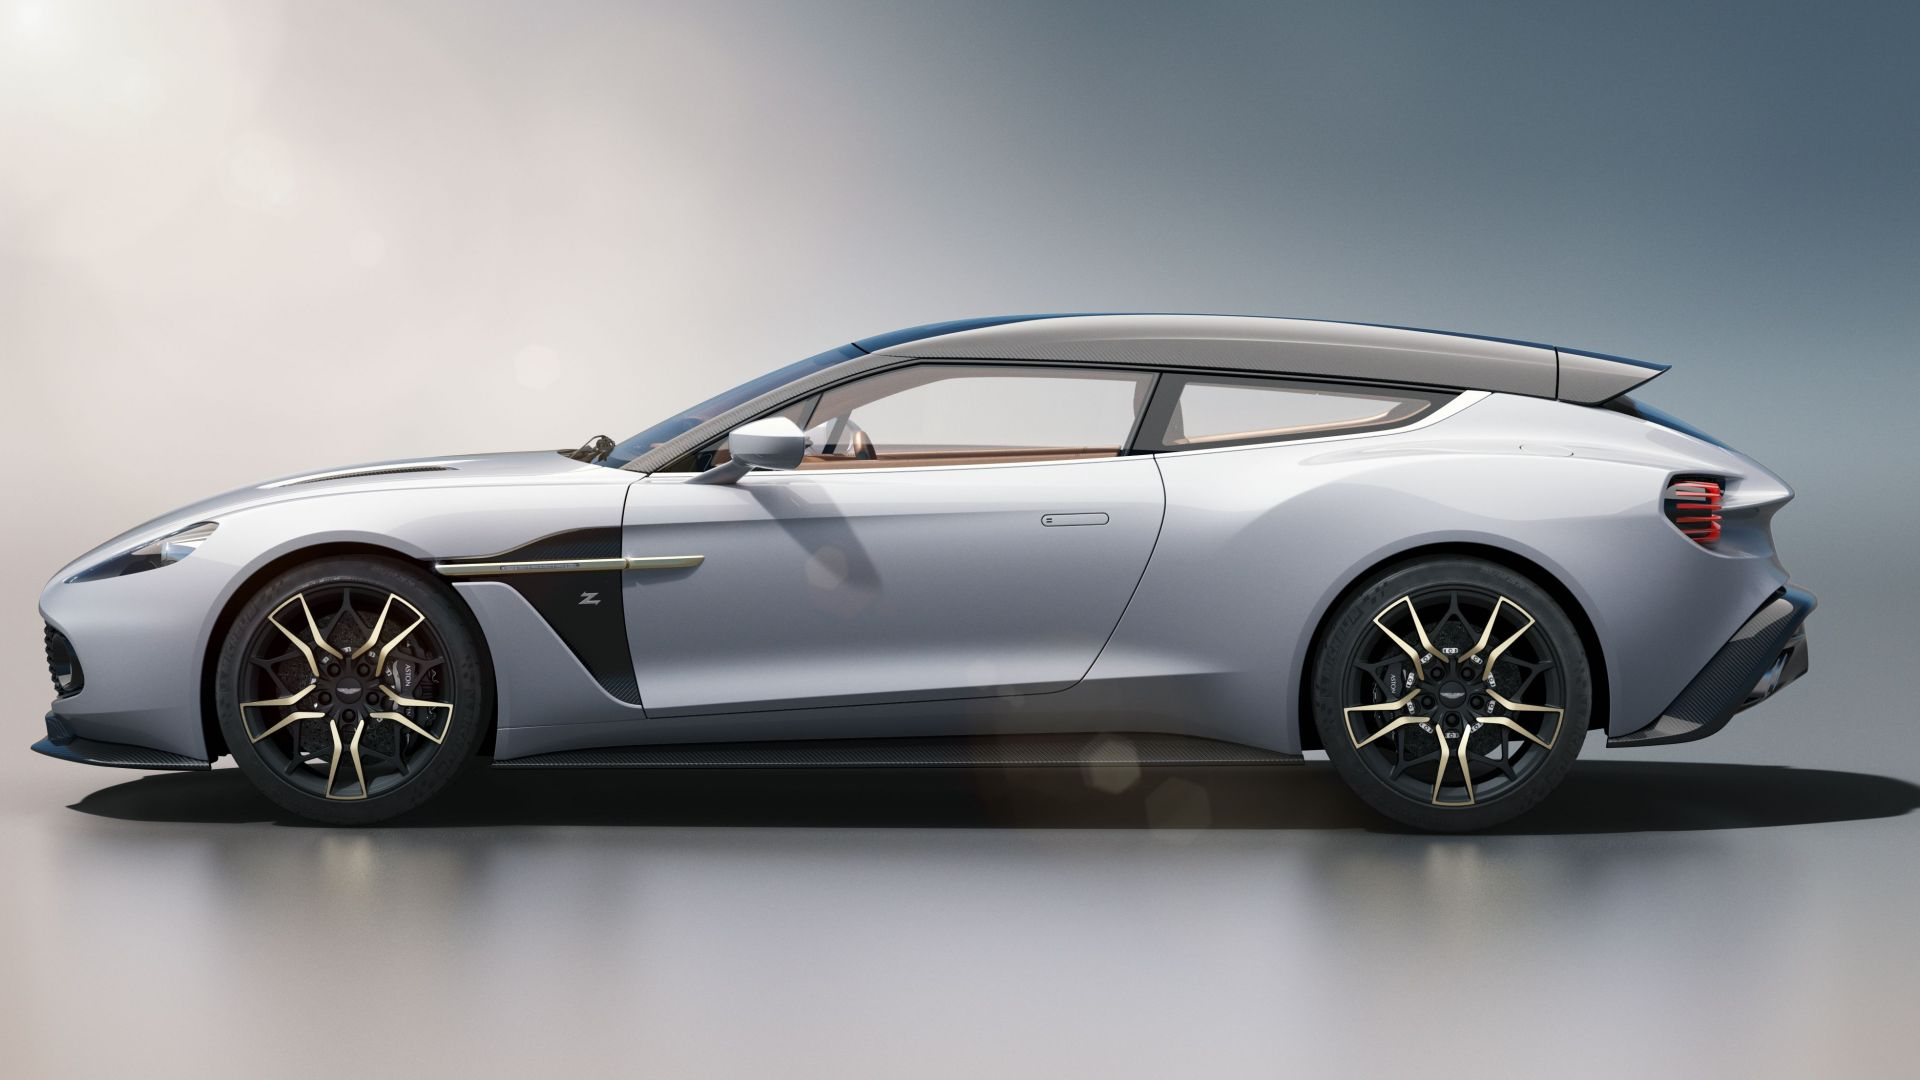 Aston Martin Vanquish Zagato Shooting Brake, 2019 Cars, 4K (horizontal)